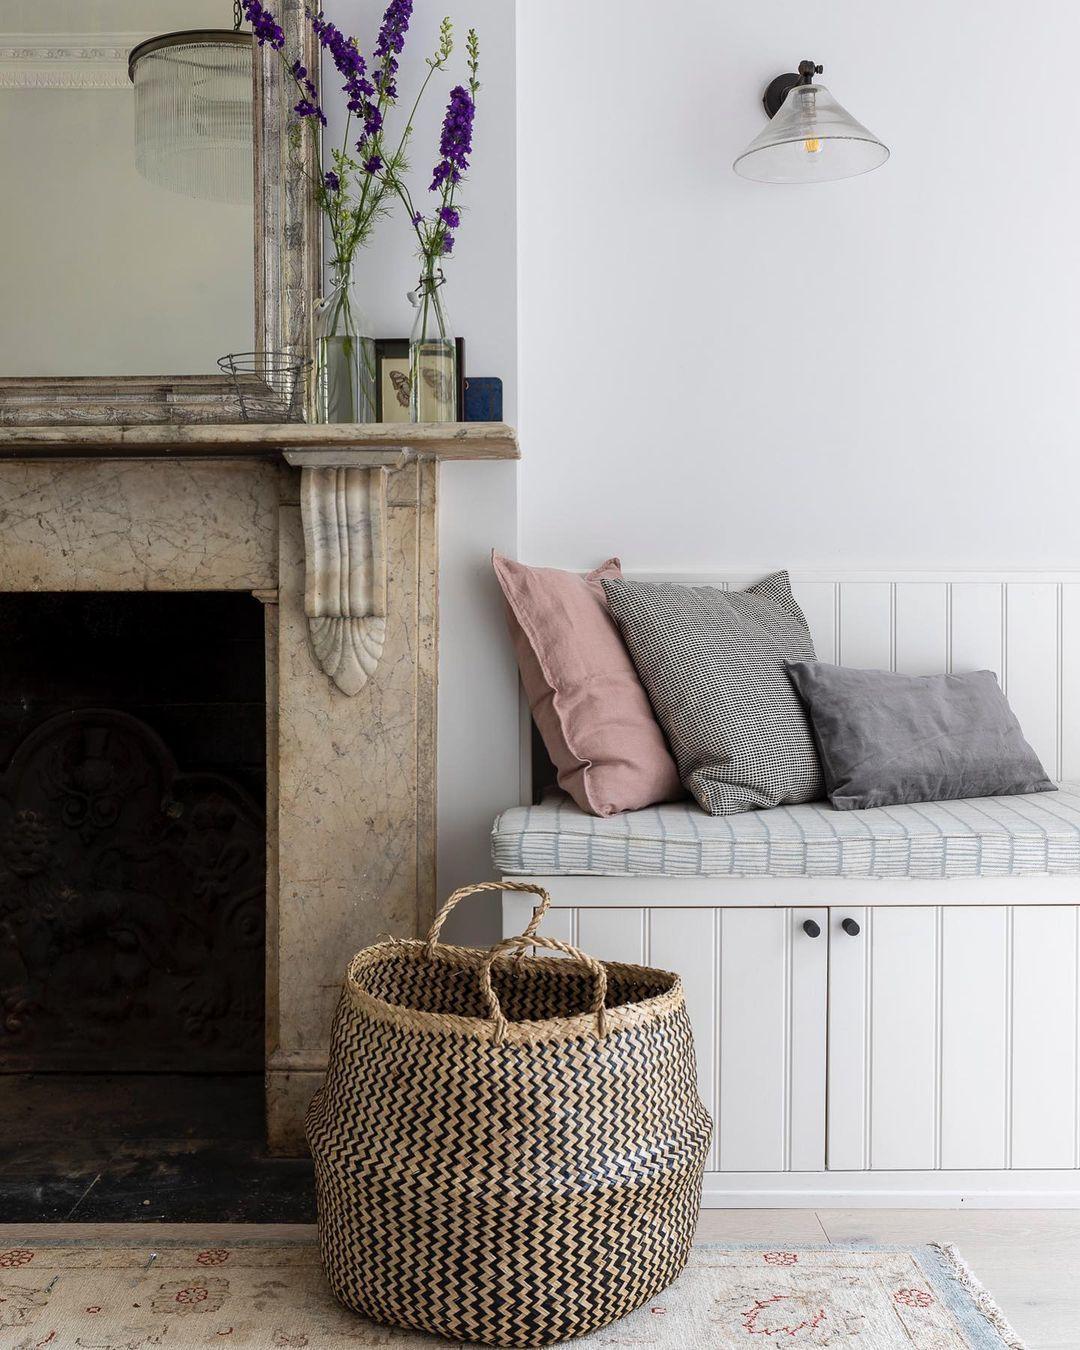 Detail of an antique marble fireplace, antique rug, and built-in bench in a beautifully designed space by Imperfect Interiors. #fireplace #antiques #interiordesign #serenedecor #englishcountry